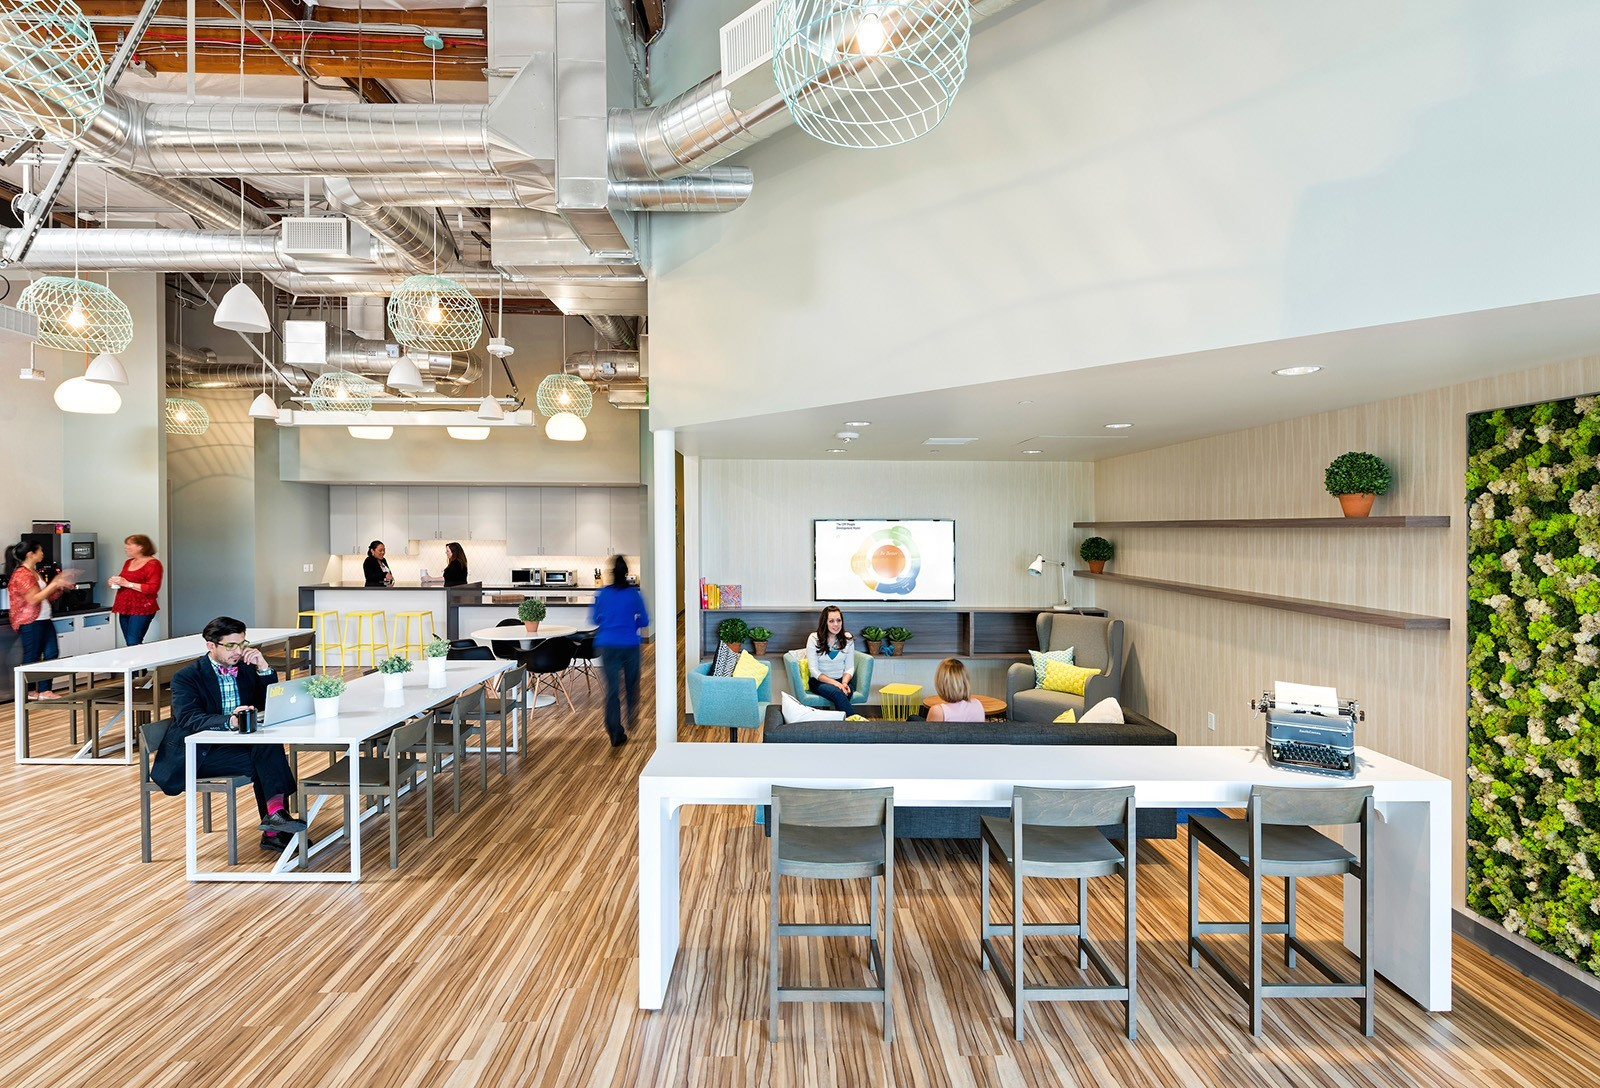 A Tour of CPP's New Beautiful Sunnyvale Headquarters